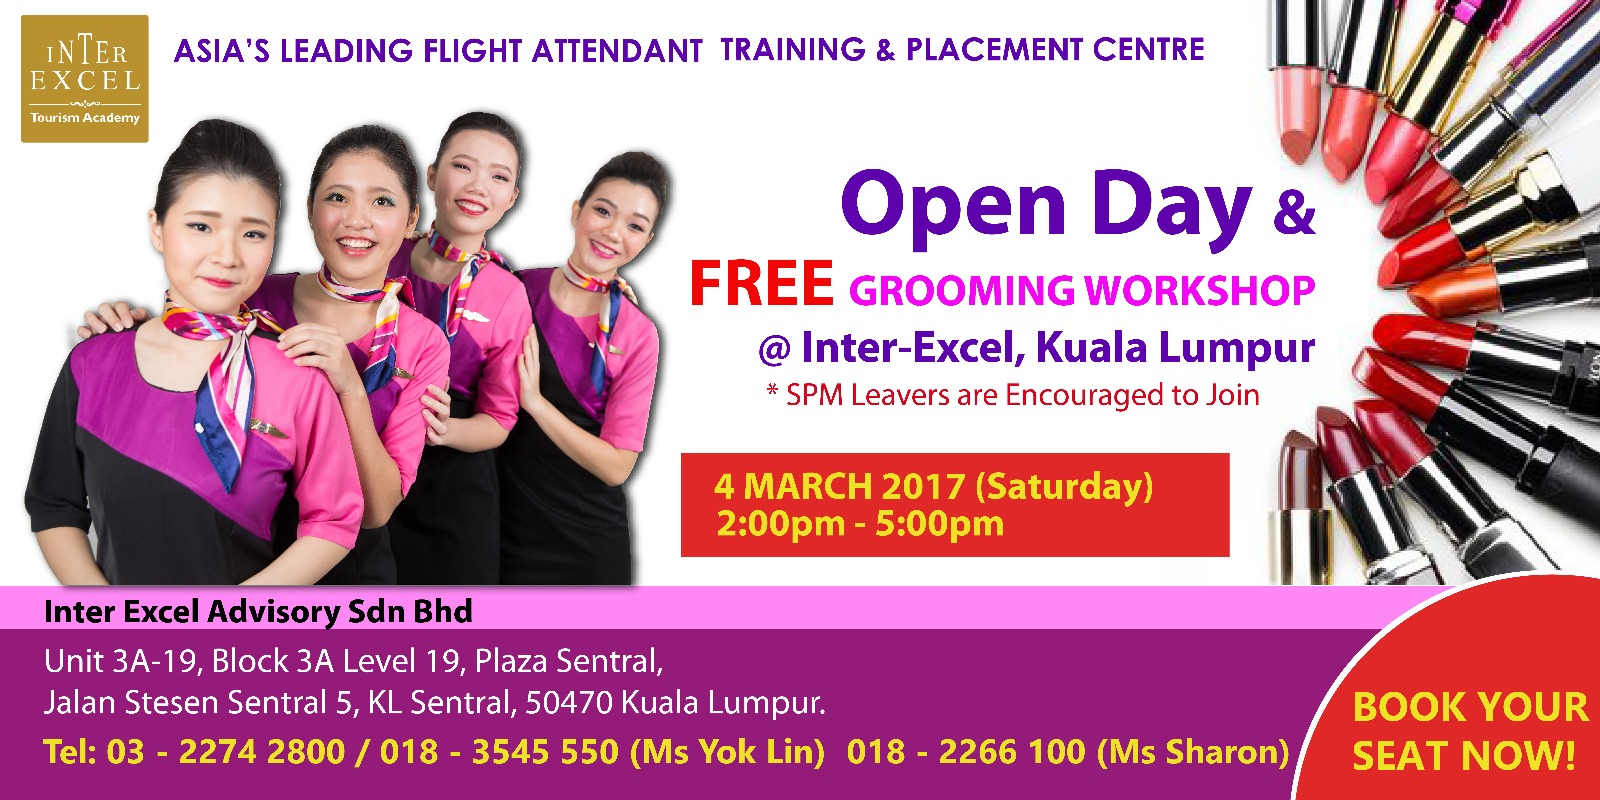 Inter Excel Malaysia Airline Training Placement Centre Inter Excel Open Day Free Grooming Workshop